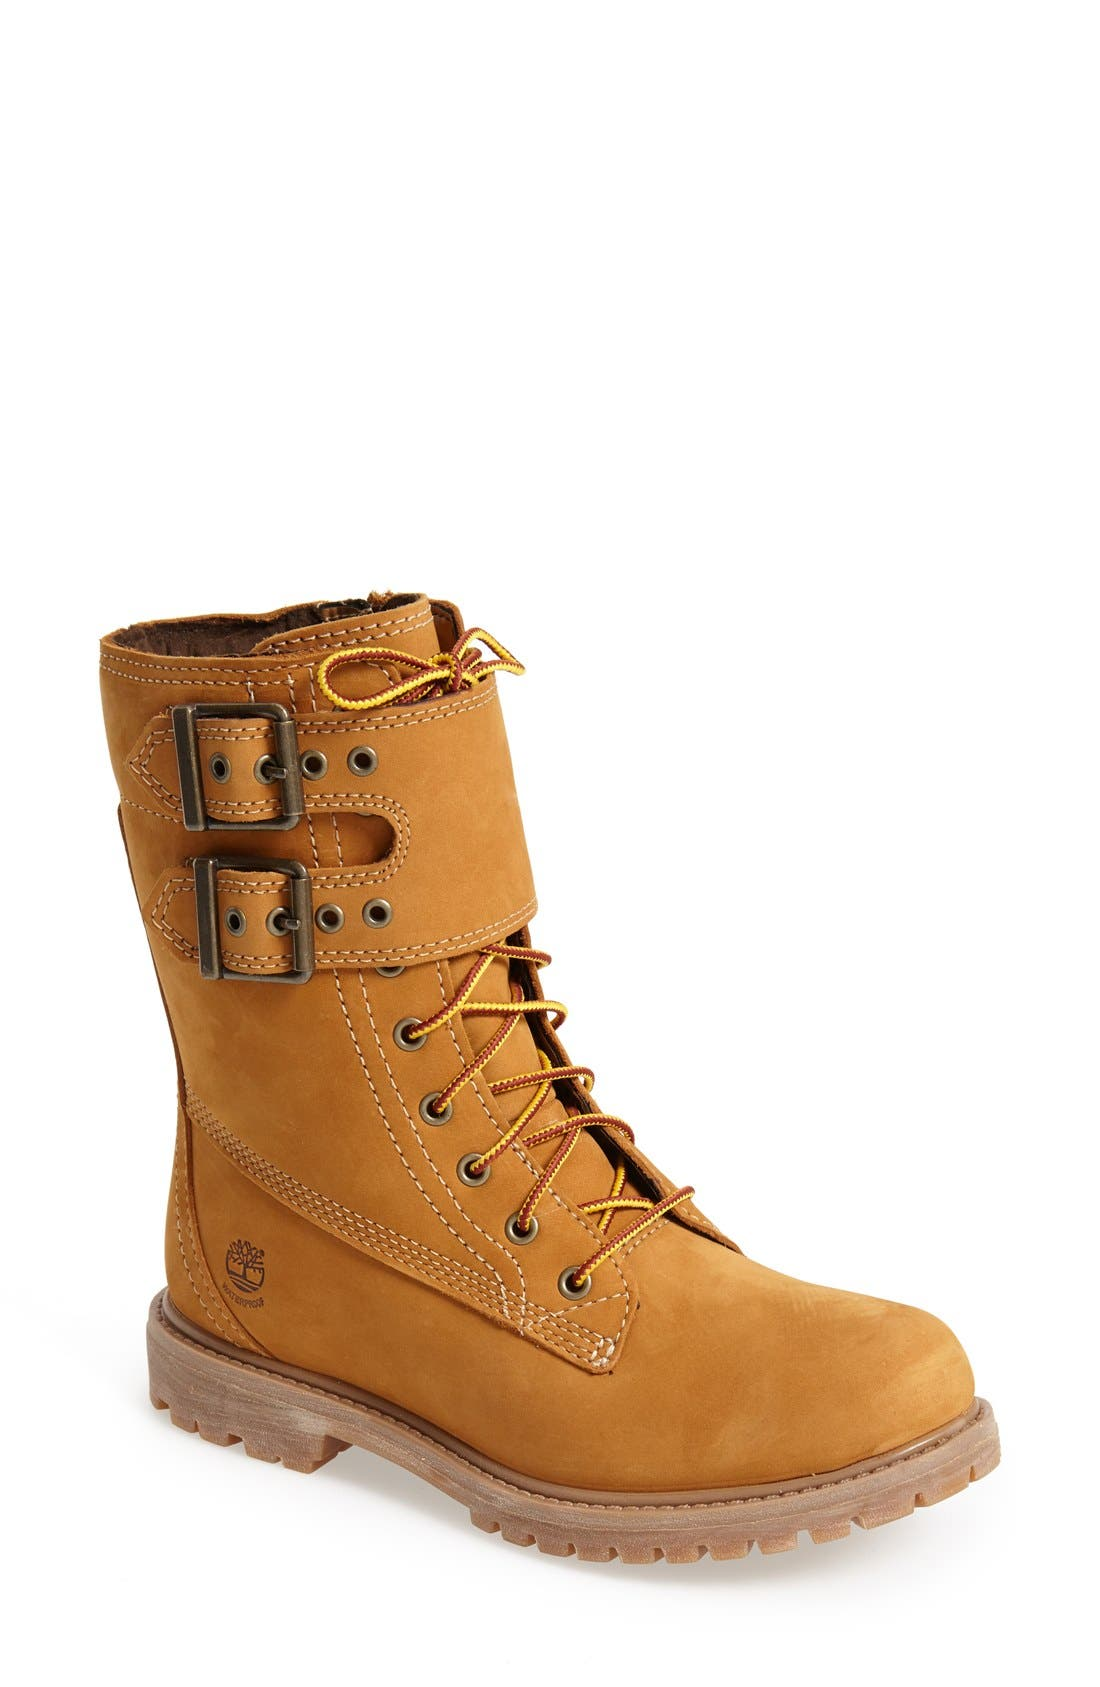 Main Image - Timberland Earthkeepers® Waterproof Double Strap Boot (Women)